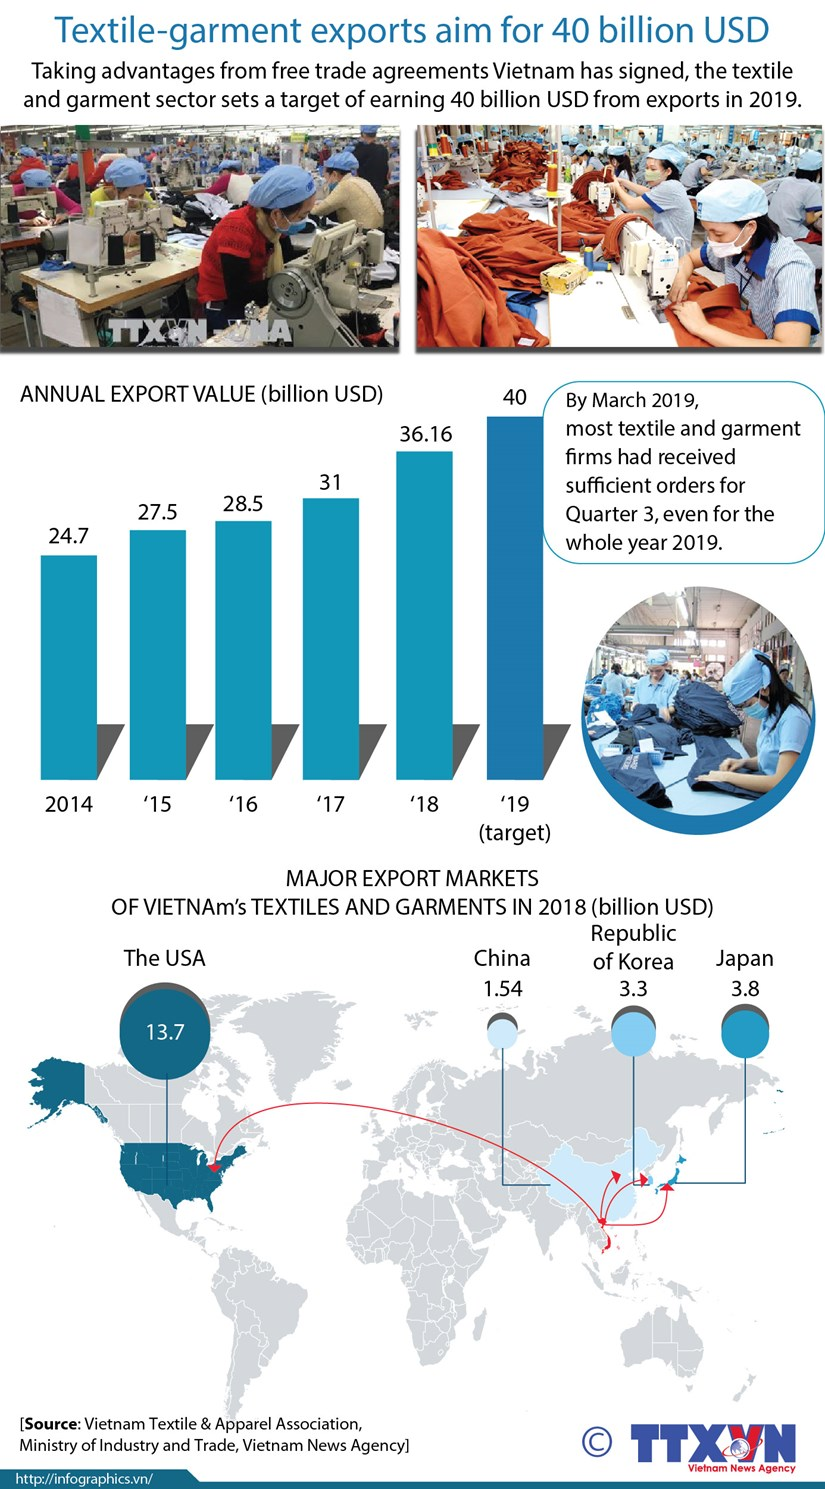 Textile-garment exports aim for 40 billion USD hinh anh 1